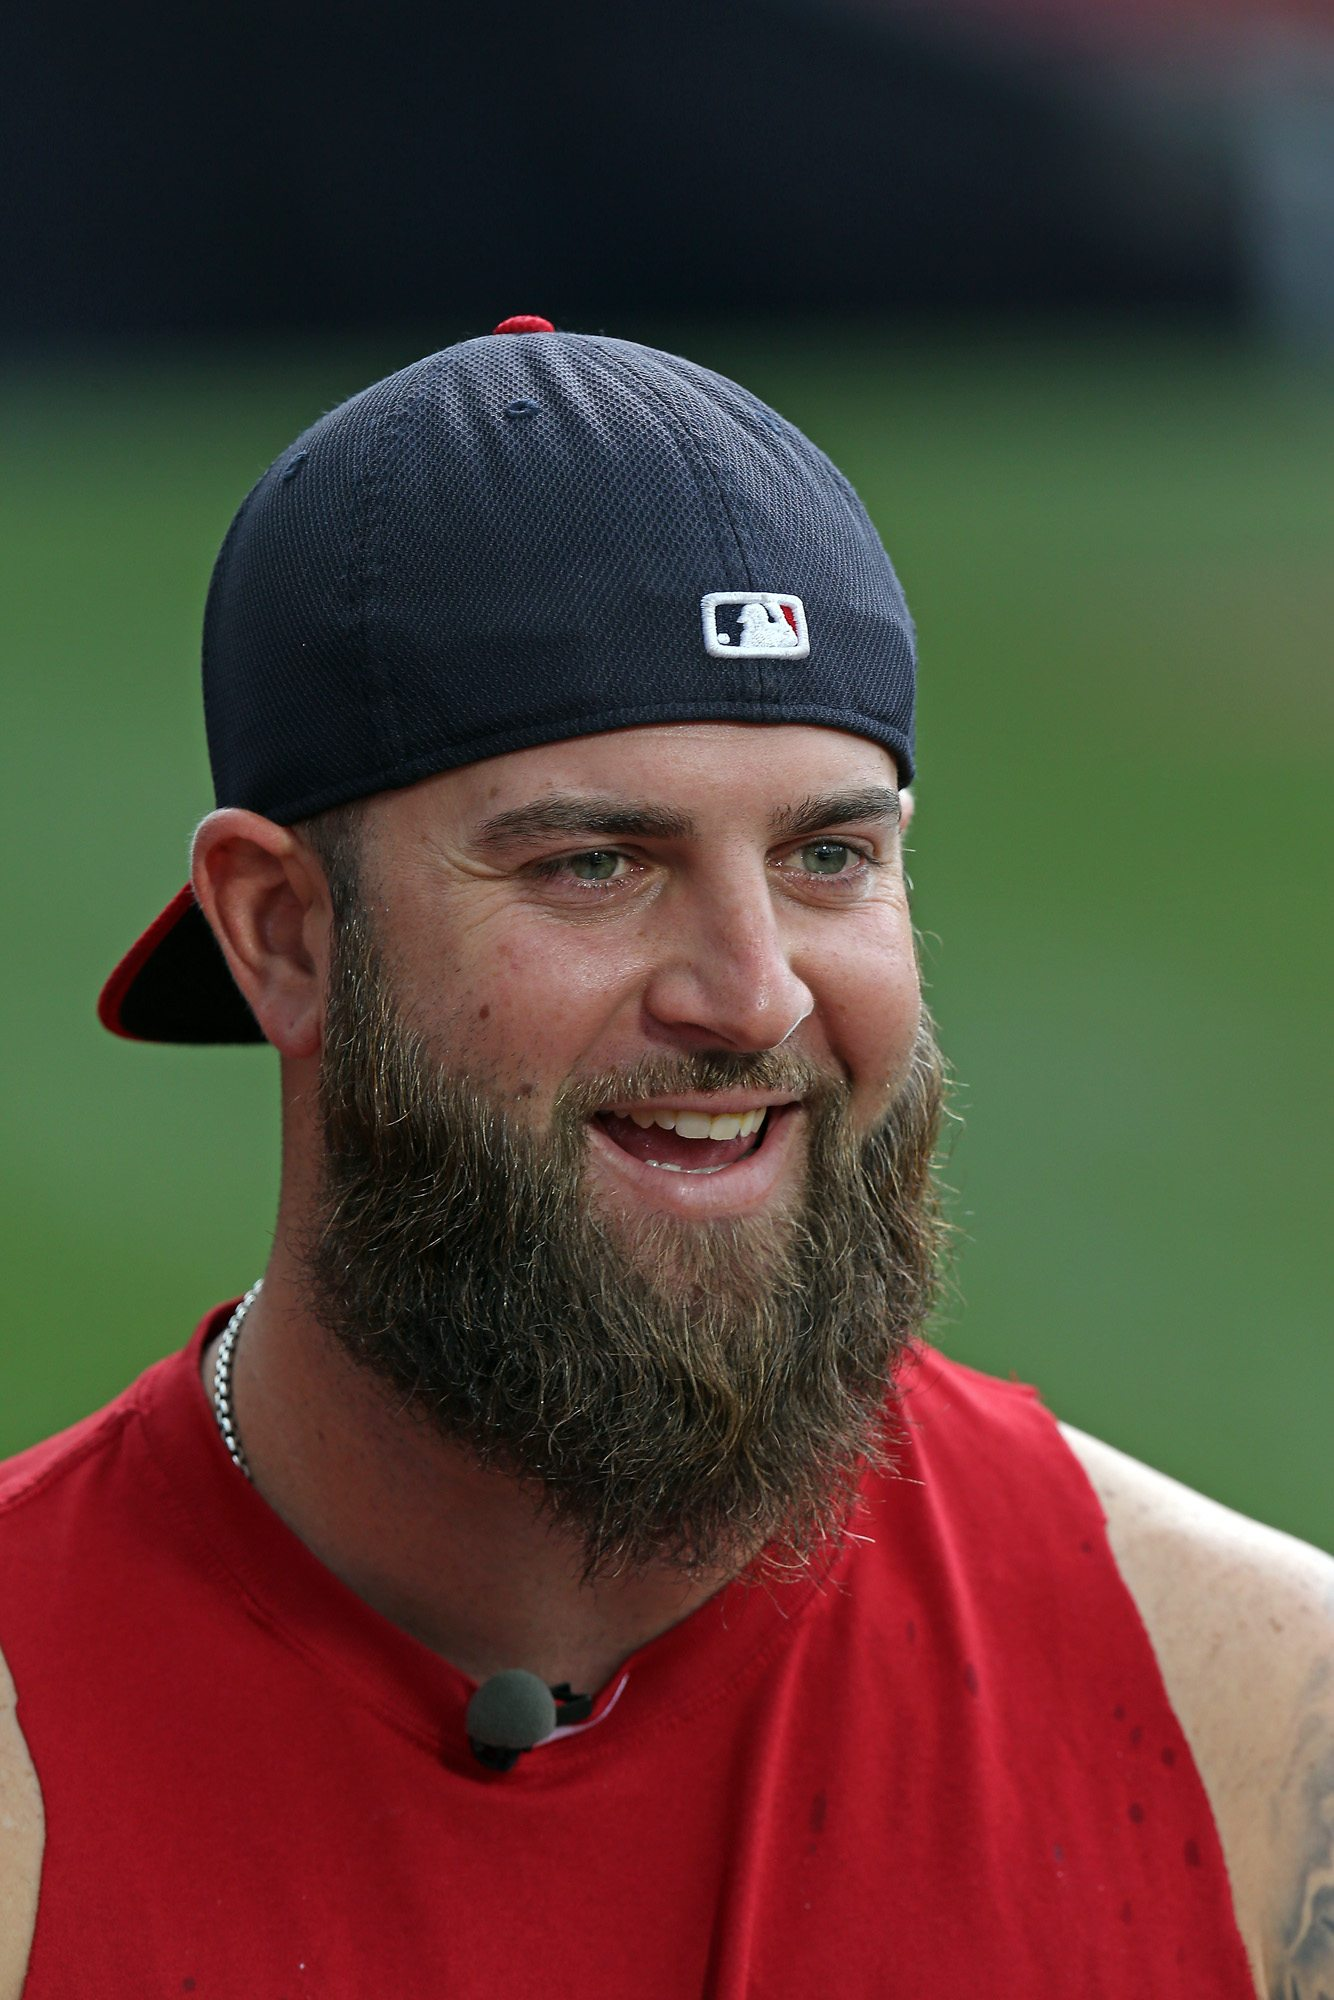 (Boston, MA,09/13/13) Boston Red Sox first baseman Mike Napoli (12) give a pre game interview as the Red Sox take on the Yankees at Fenway Park. Friday, September 13, 2013. (Staff photo by Stuart Cahill)